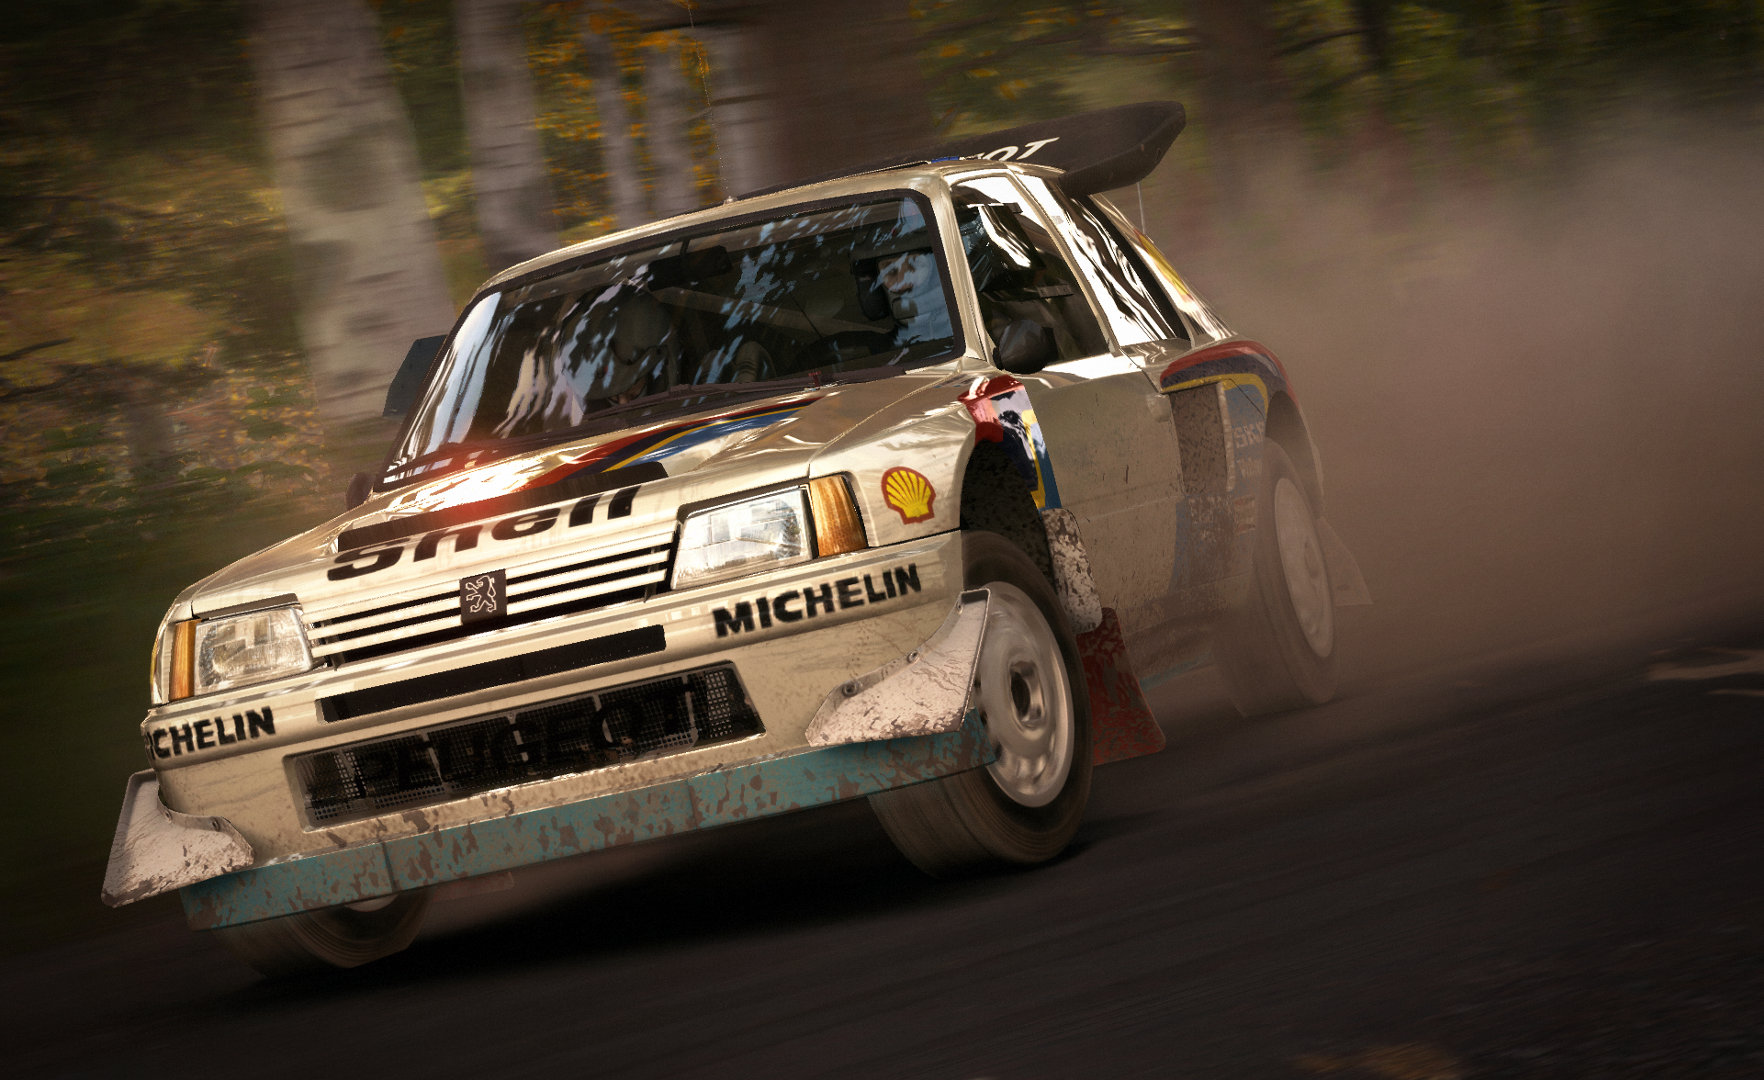 dirtrally-screenshot-01-ps4-us-3feb26?$M